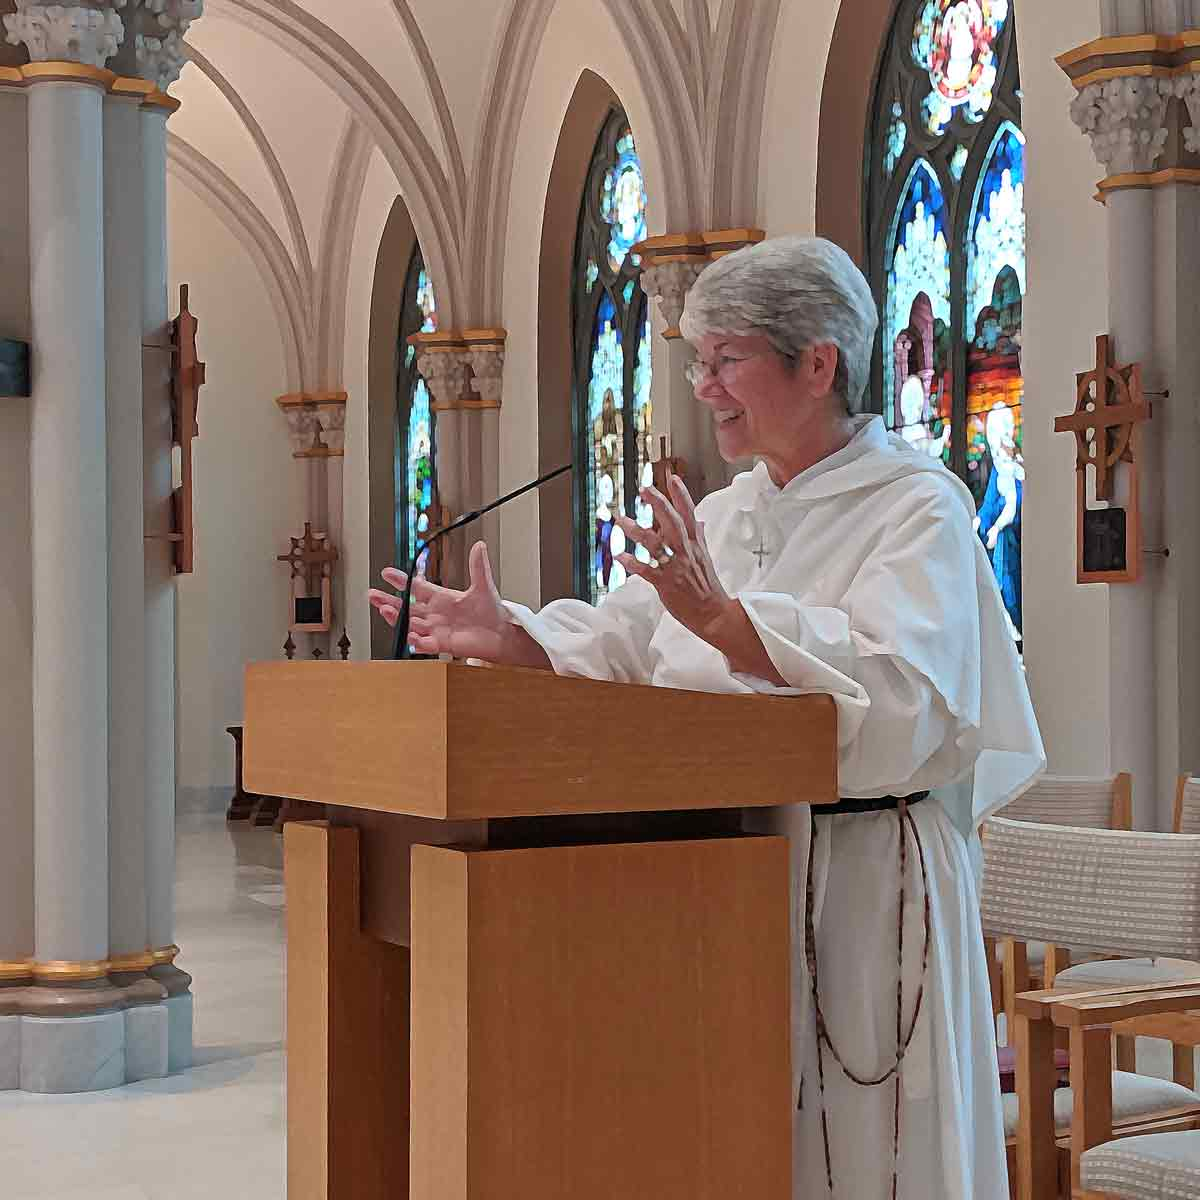 The Canaanite Vocation Director